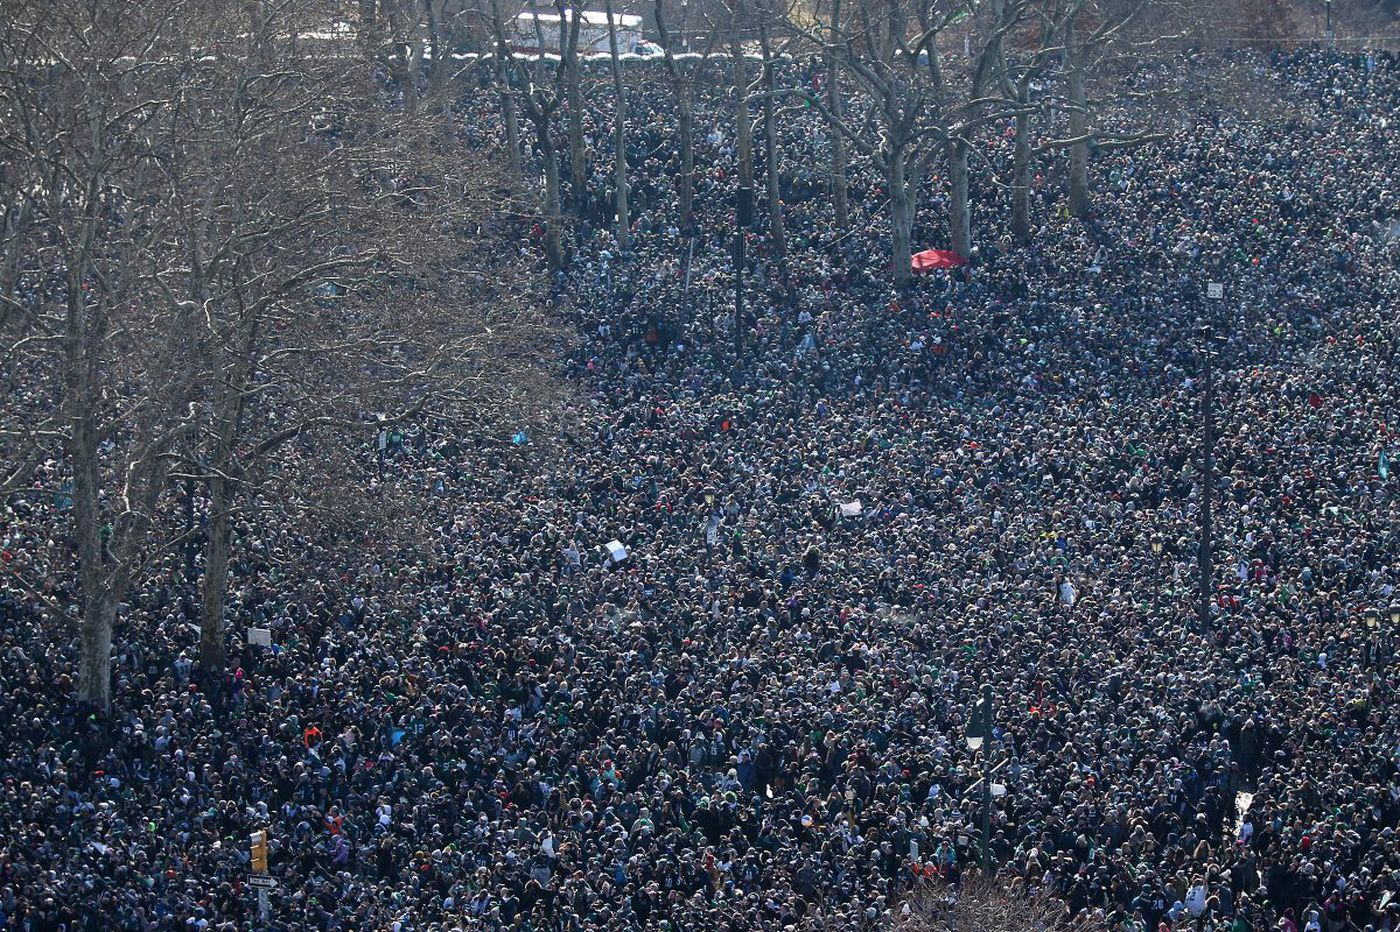 Eagles parade attendance: Close to 700,000, experts say